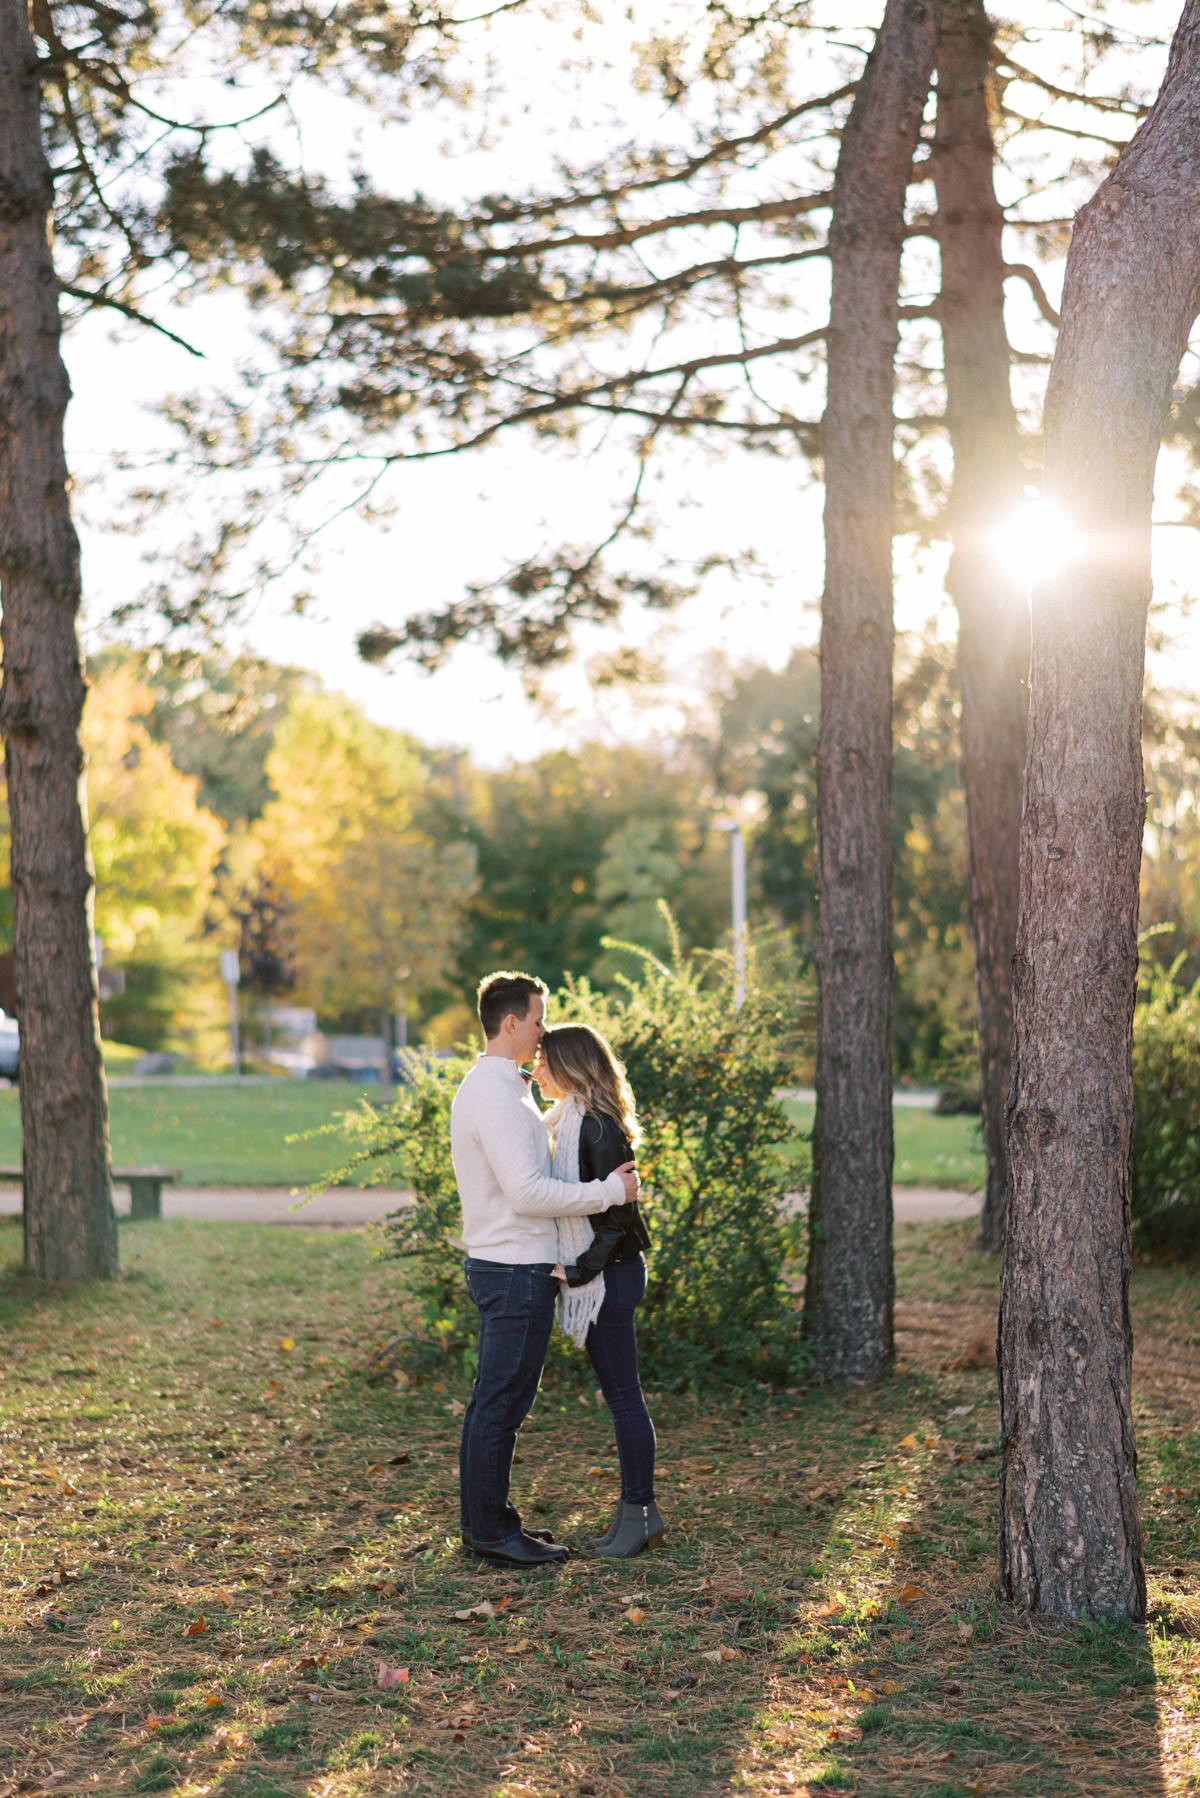 sun shining through the trees during the engagement session